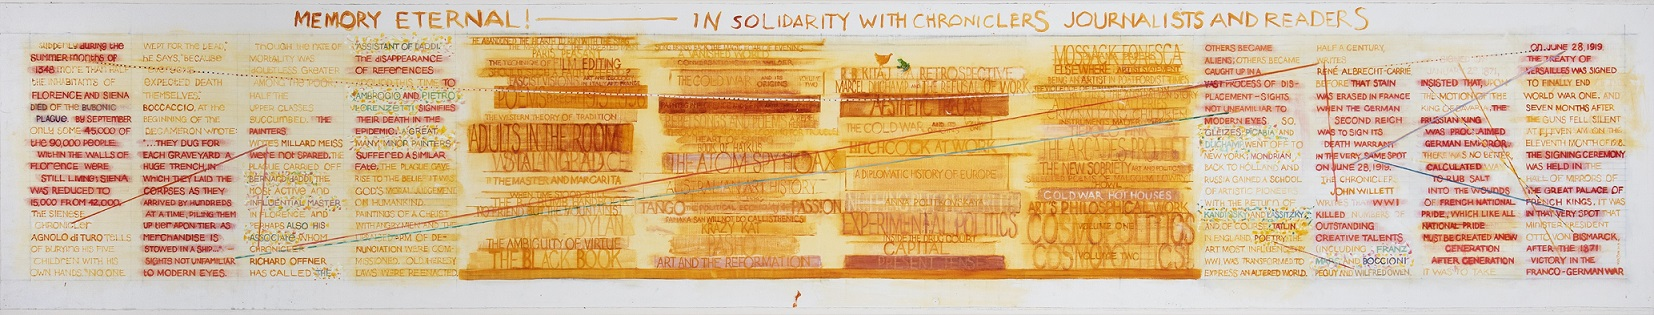 Memory eternal! In solidarity with chroniclers, journalists and readers